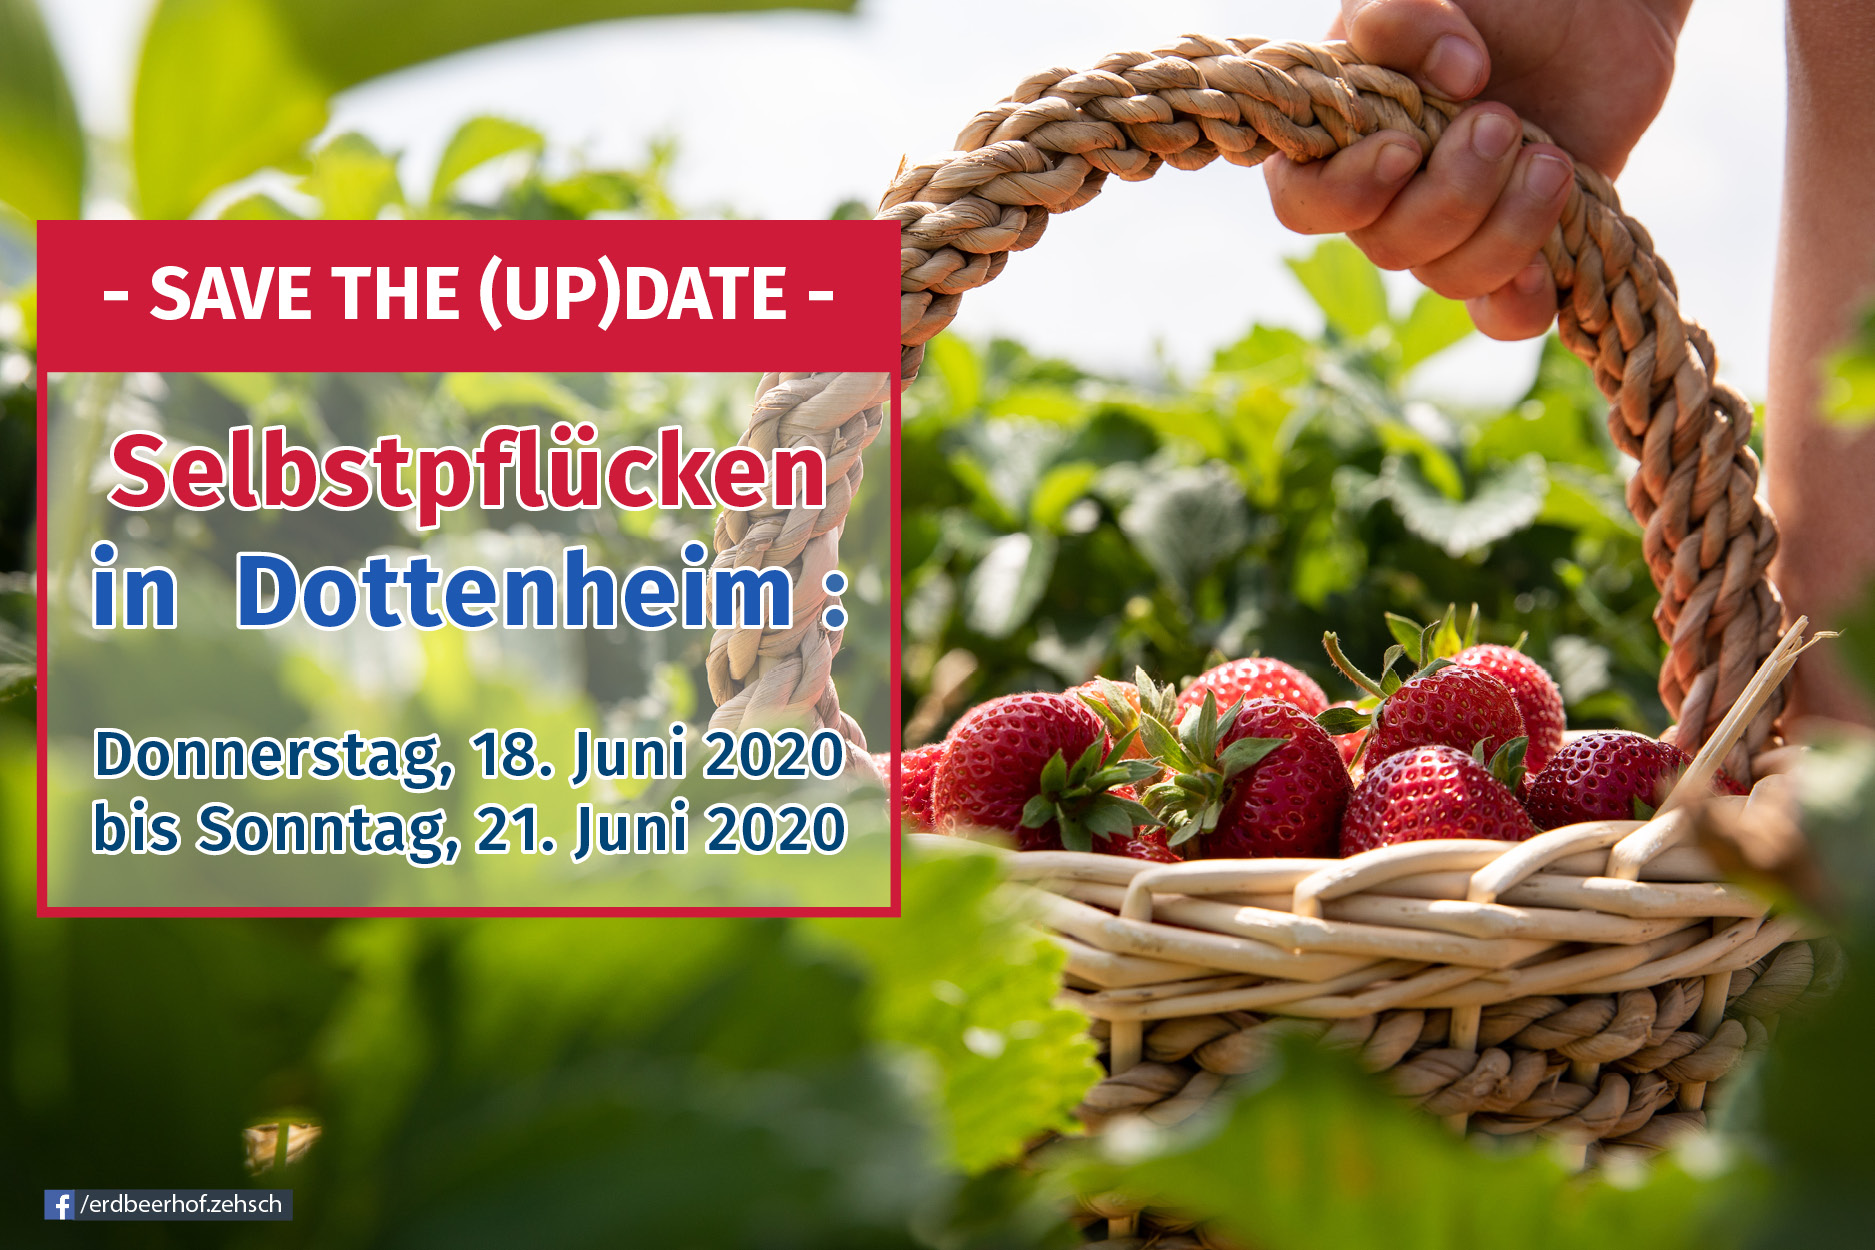 Selbstpflücke 2020: Save the (Up)Date!